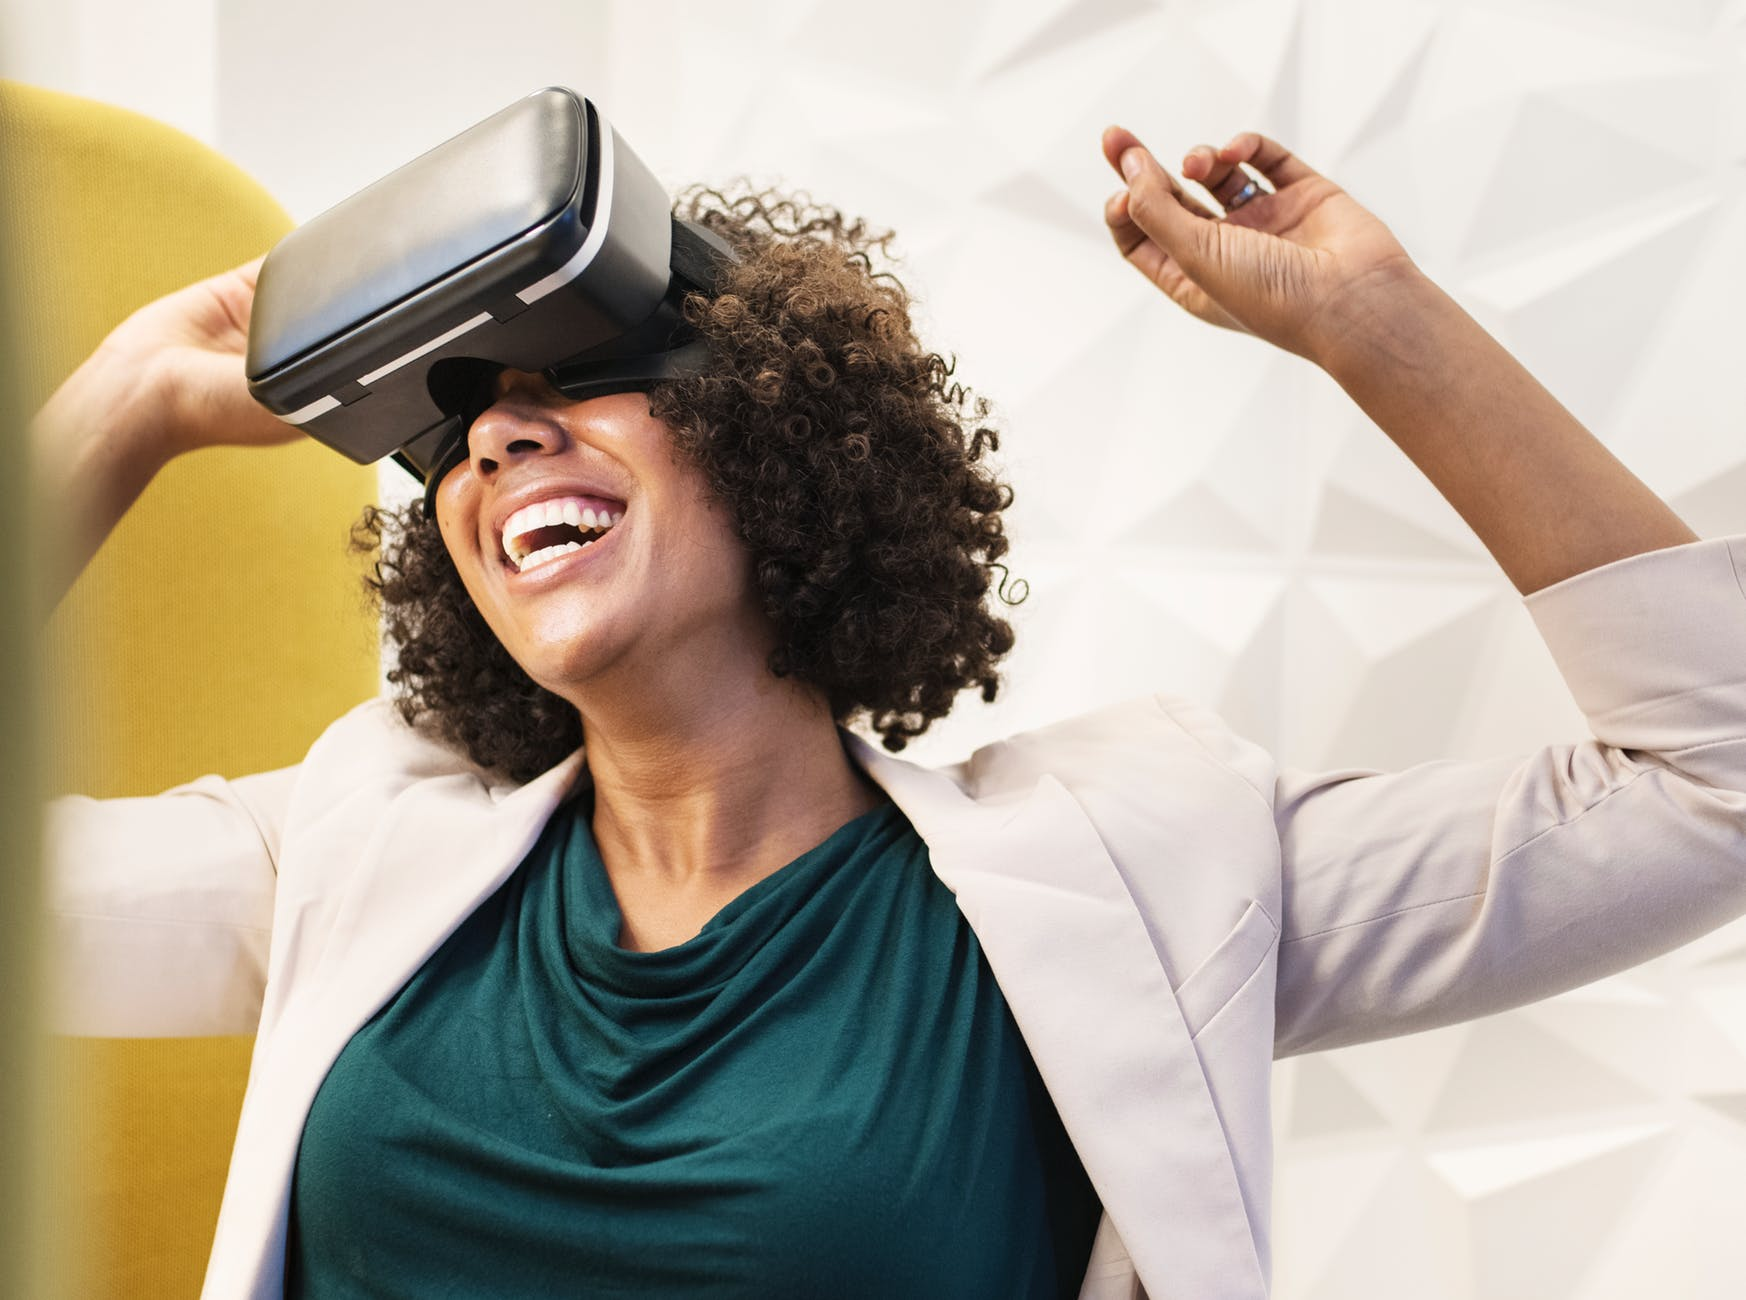 woman smiling using vr goggles